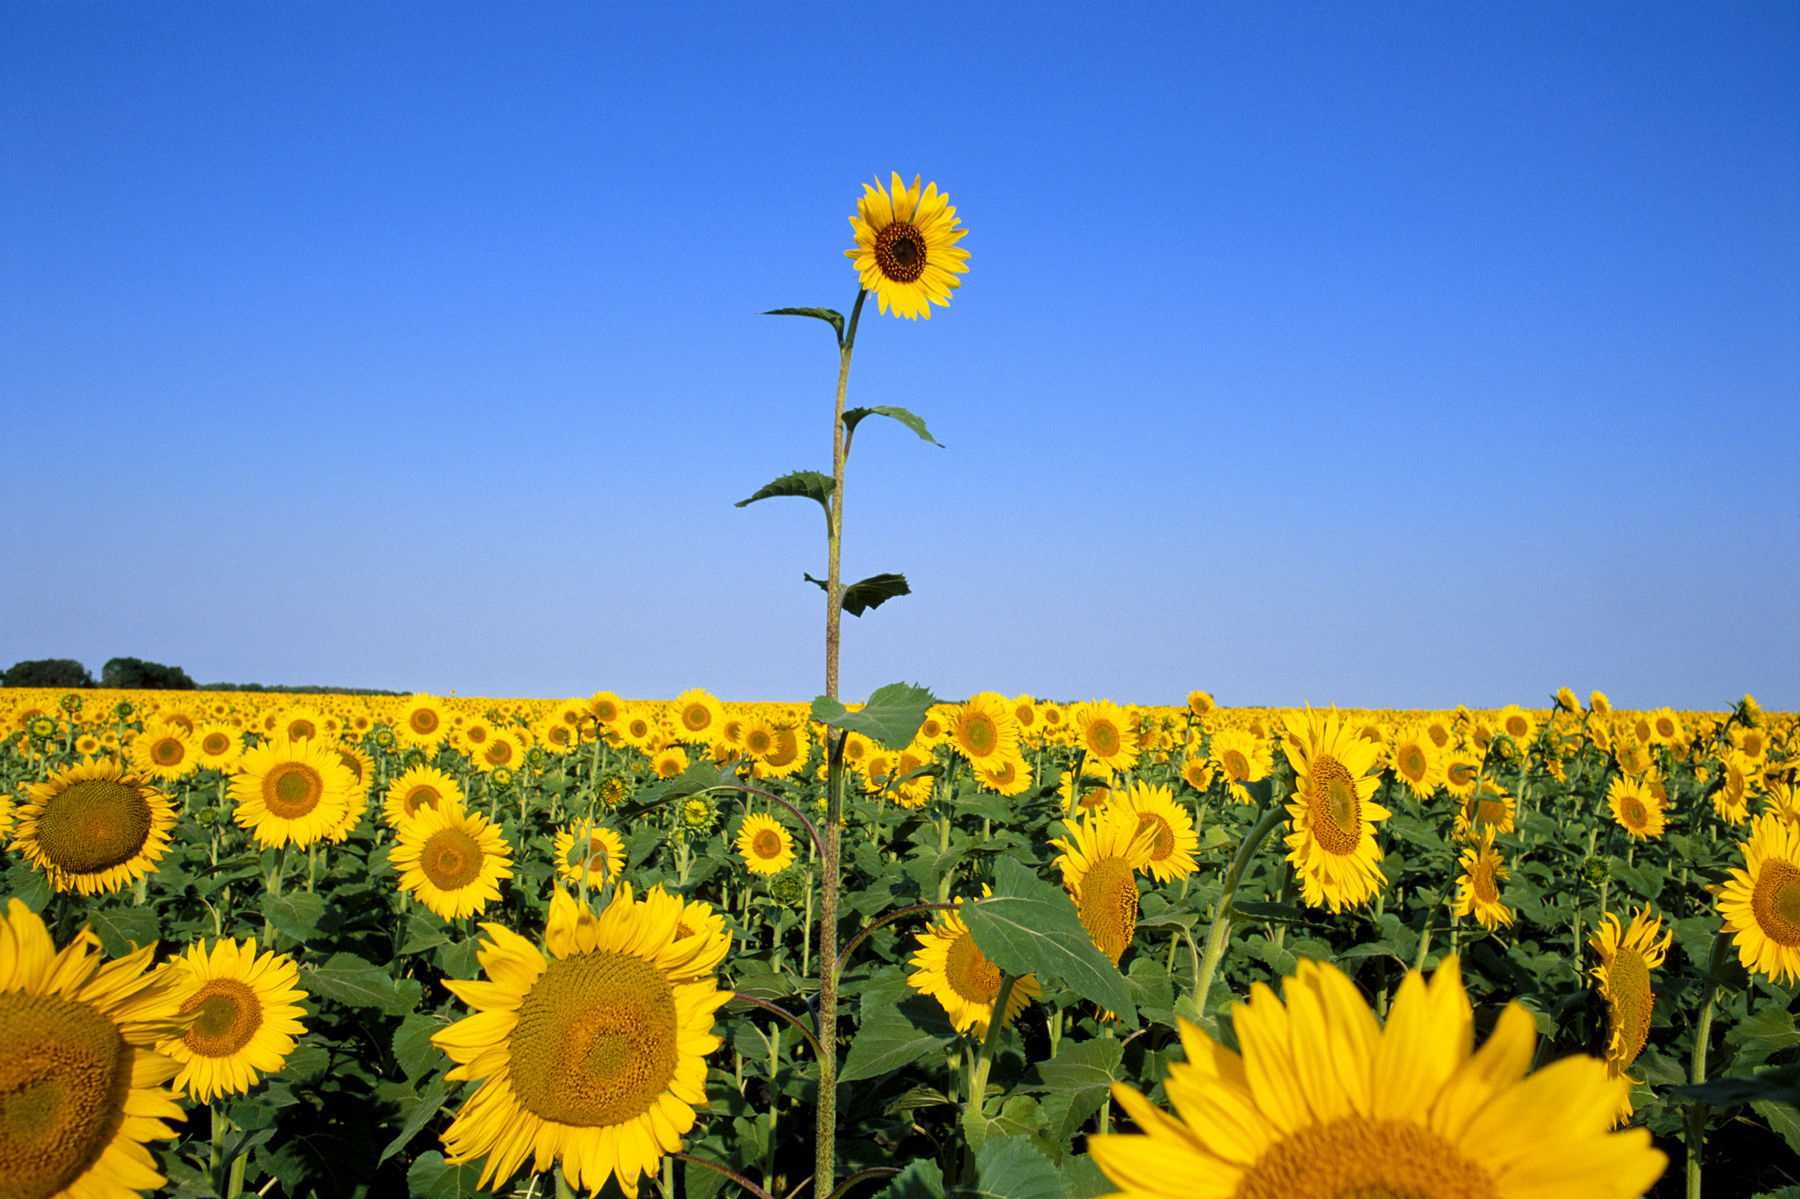 Sunflower (Helianthus annus) rising above field